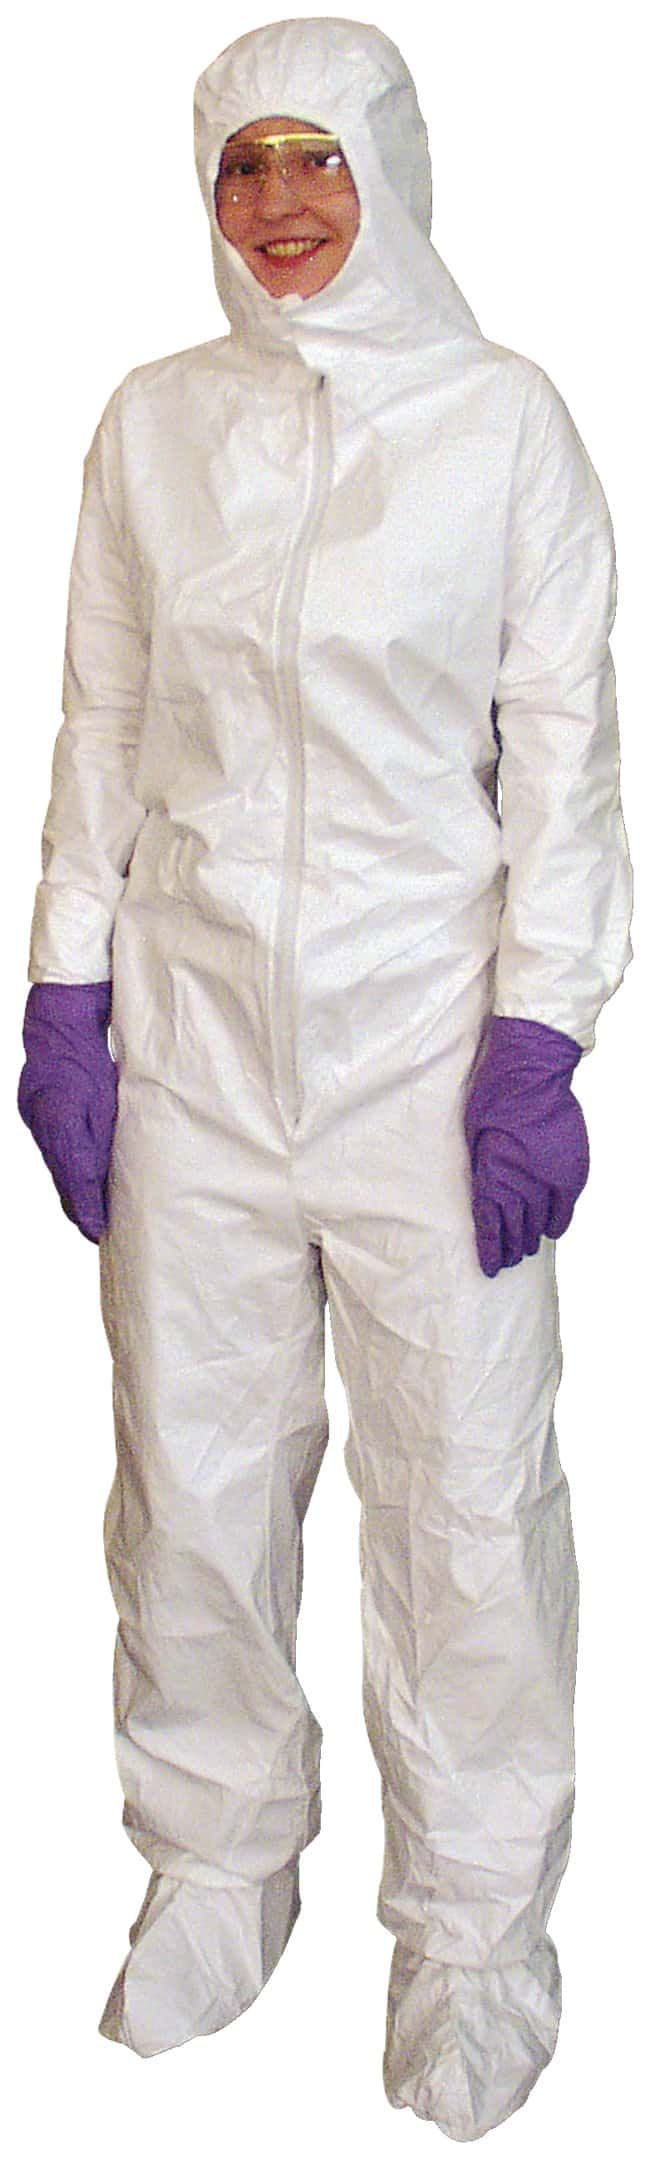 DuPont ProClean Limited-Use Cleanroom Coverall with Hood and Boots:Gloves,